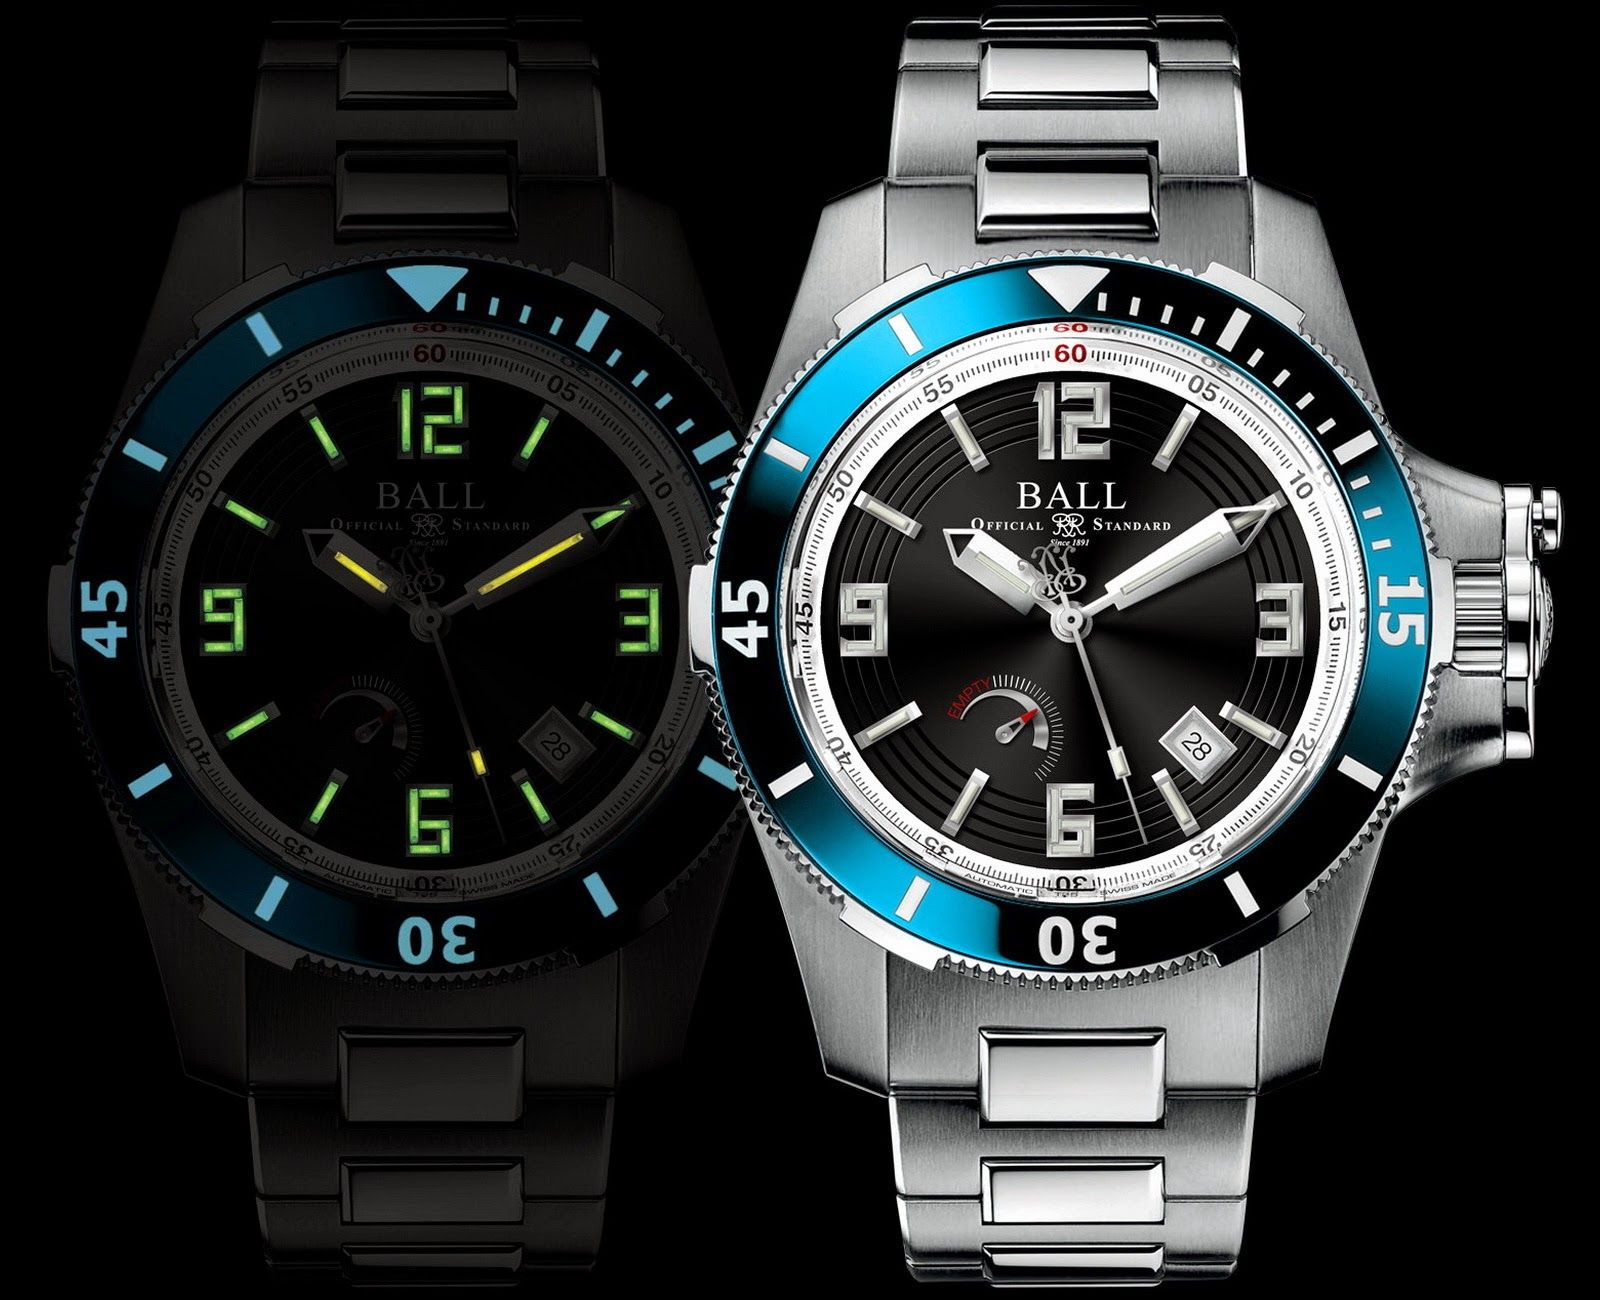 Ball watch engineer hydrocarbon hunley diving watches pinterest watch blog and diving watch for Ball watches